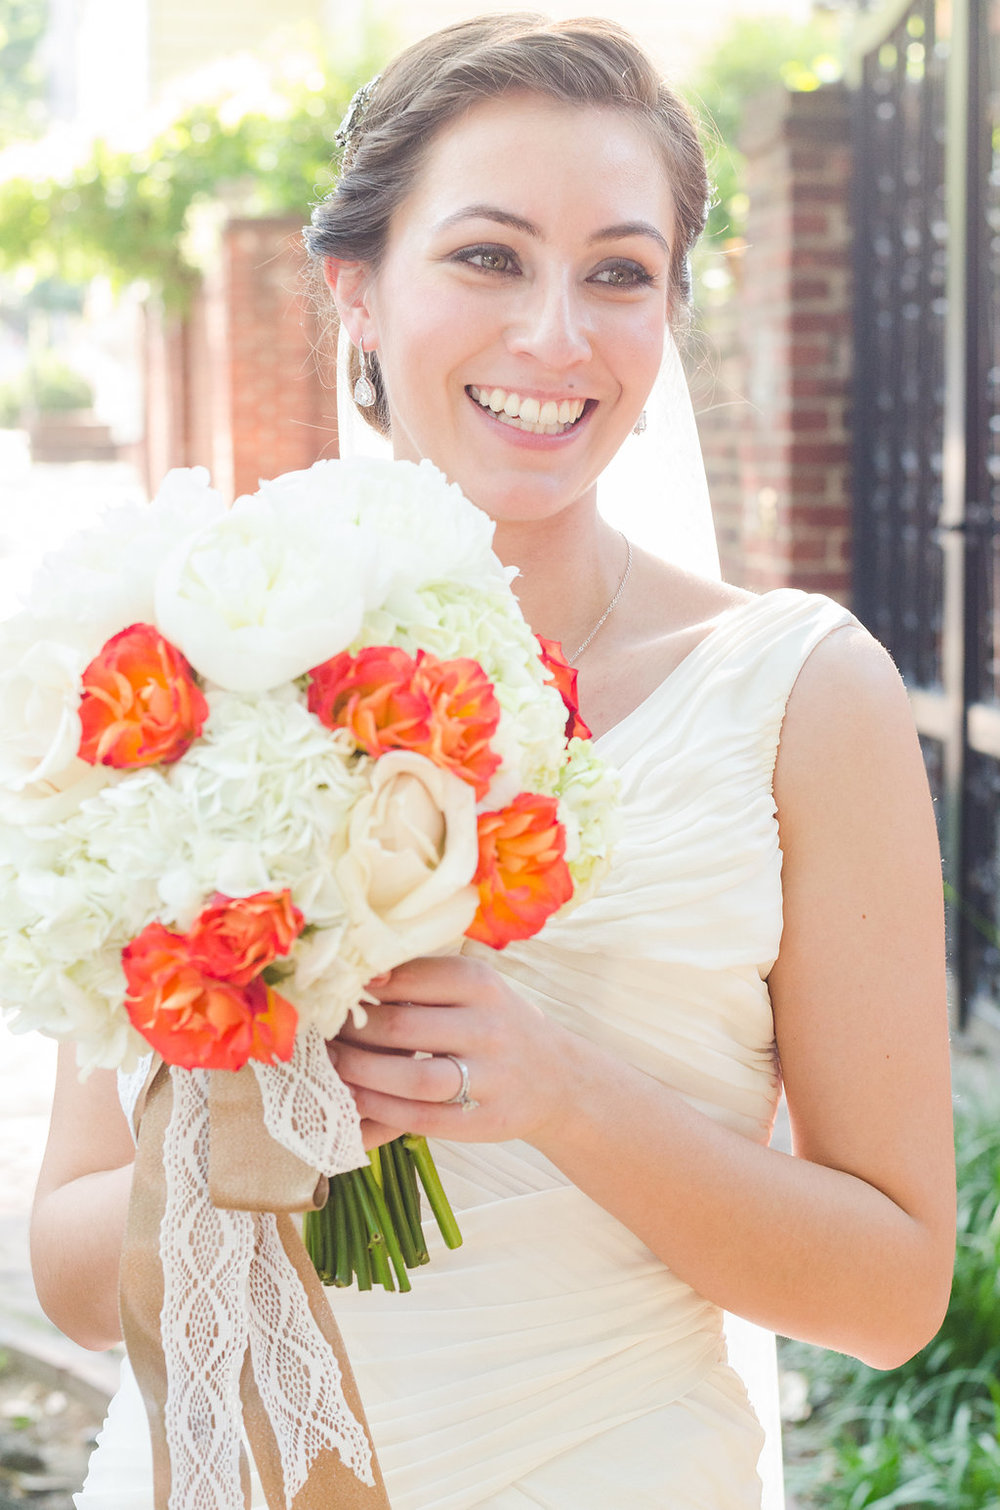 bride happy beautiful flowers chic girl flowers old town alexandria flowers